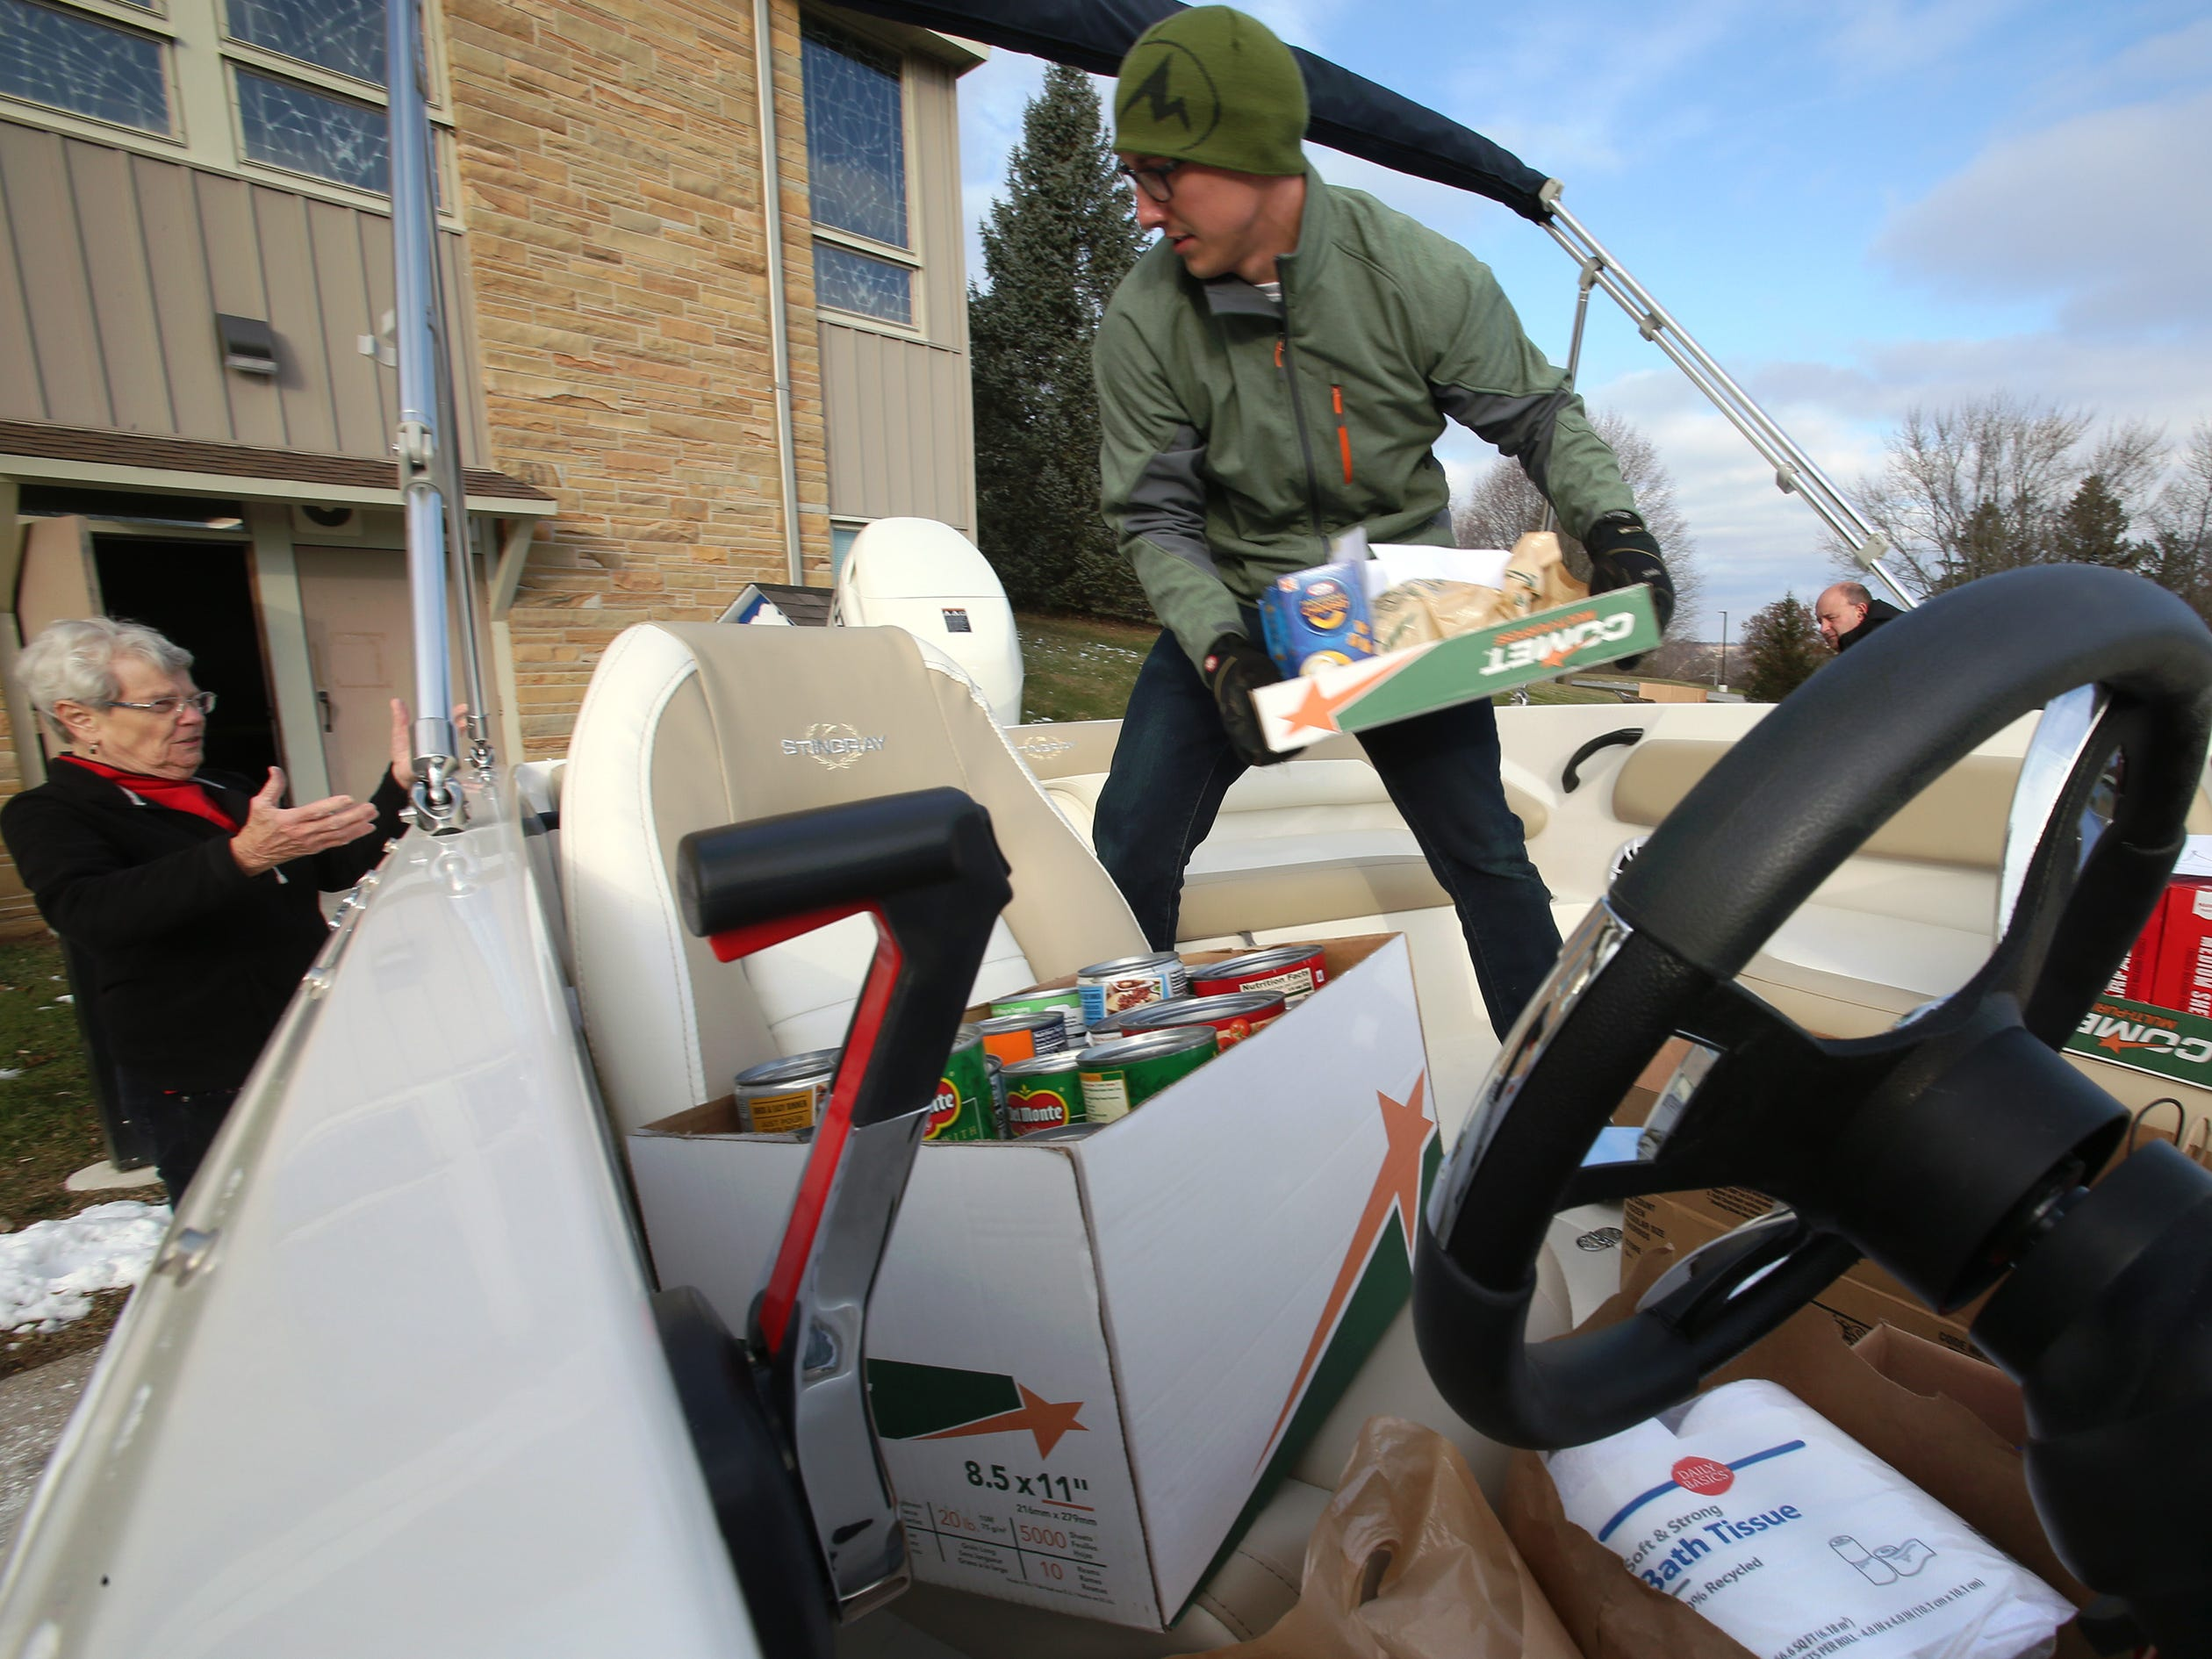 Mitchel Griep of CenterPointe Boat Services hands off a flat of foodstuffs to Karen Semrad from a boat used to transport a major food donation to the Pewaukee Food Pantry at Gethsemane United Methodist Church on Nov. 21. CenterPointe collected donations from customers and transported a collection by Pewaukee's Asa Clark Middle School that the students had presorted by type and date.